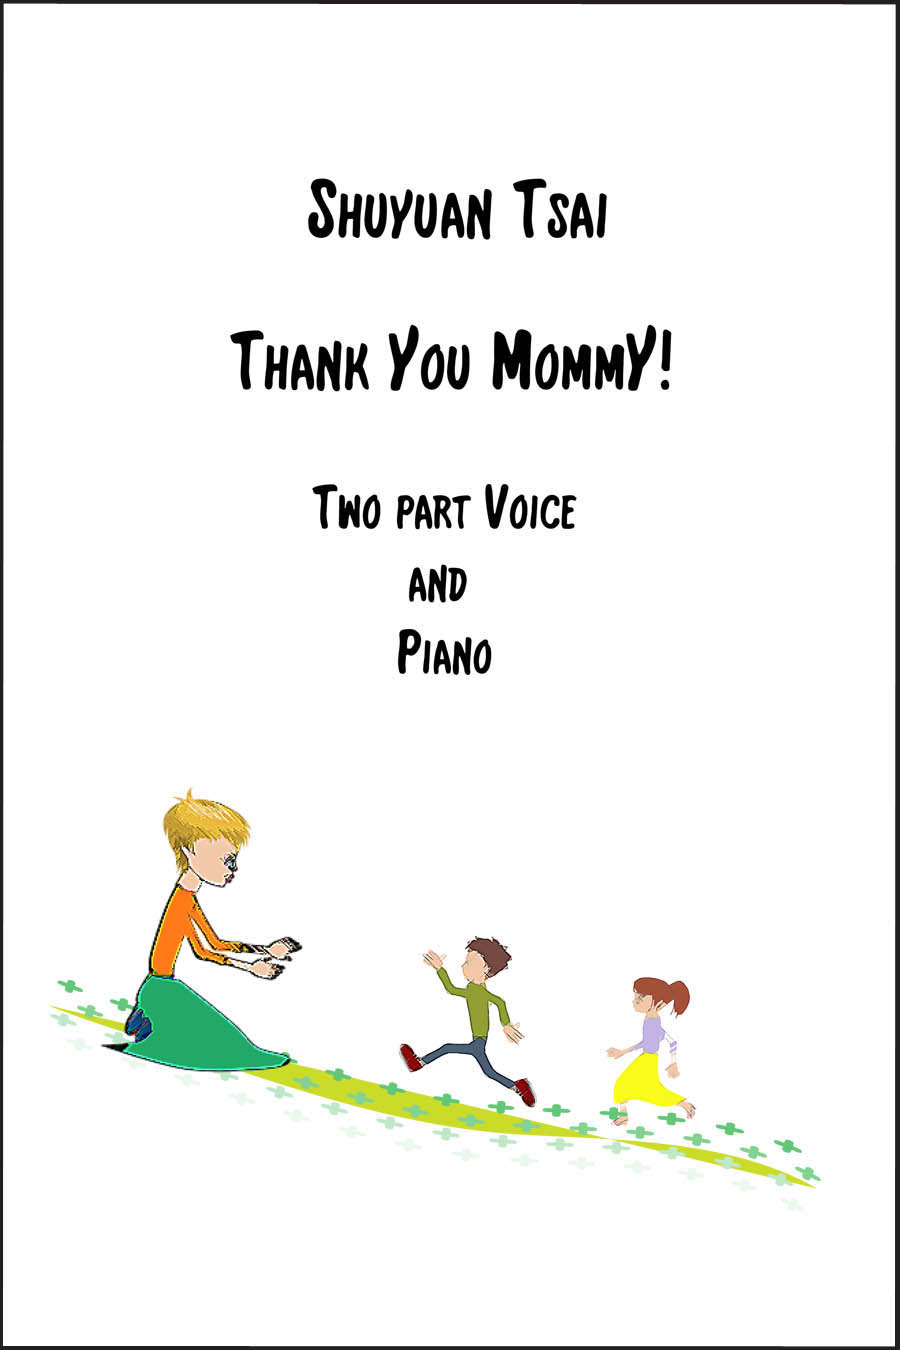 Thank You Mommy for Choir and piano